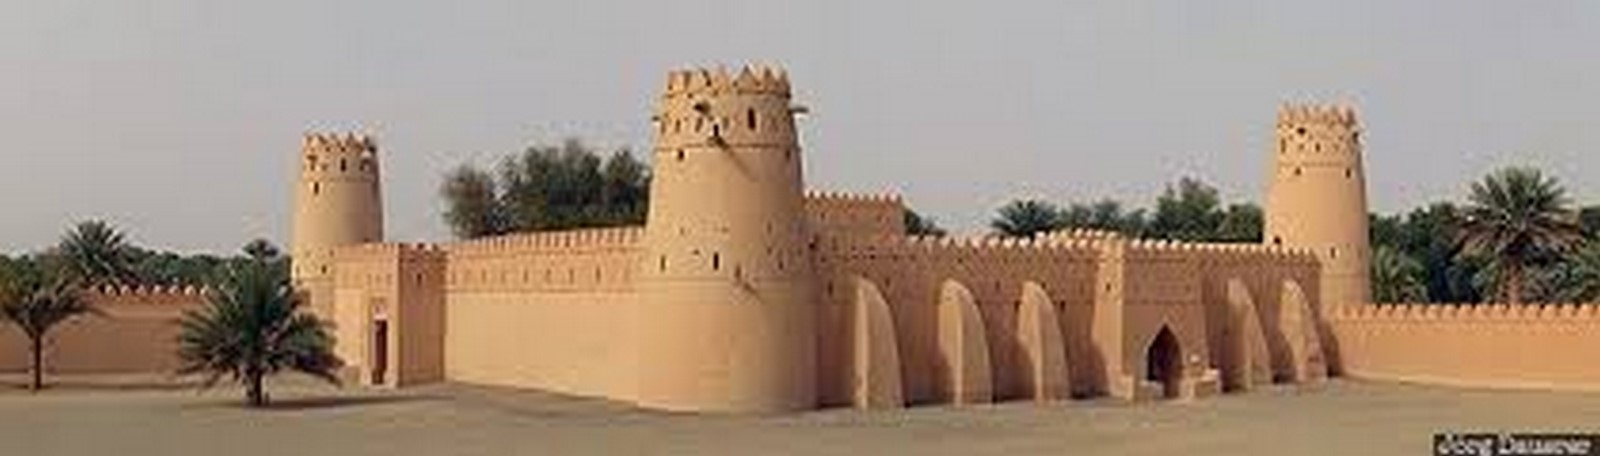 10 Structures that represent the Historical architecture of UAE - Sheet1